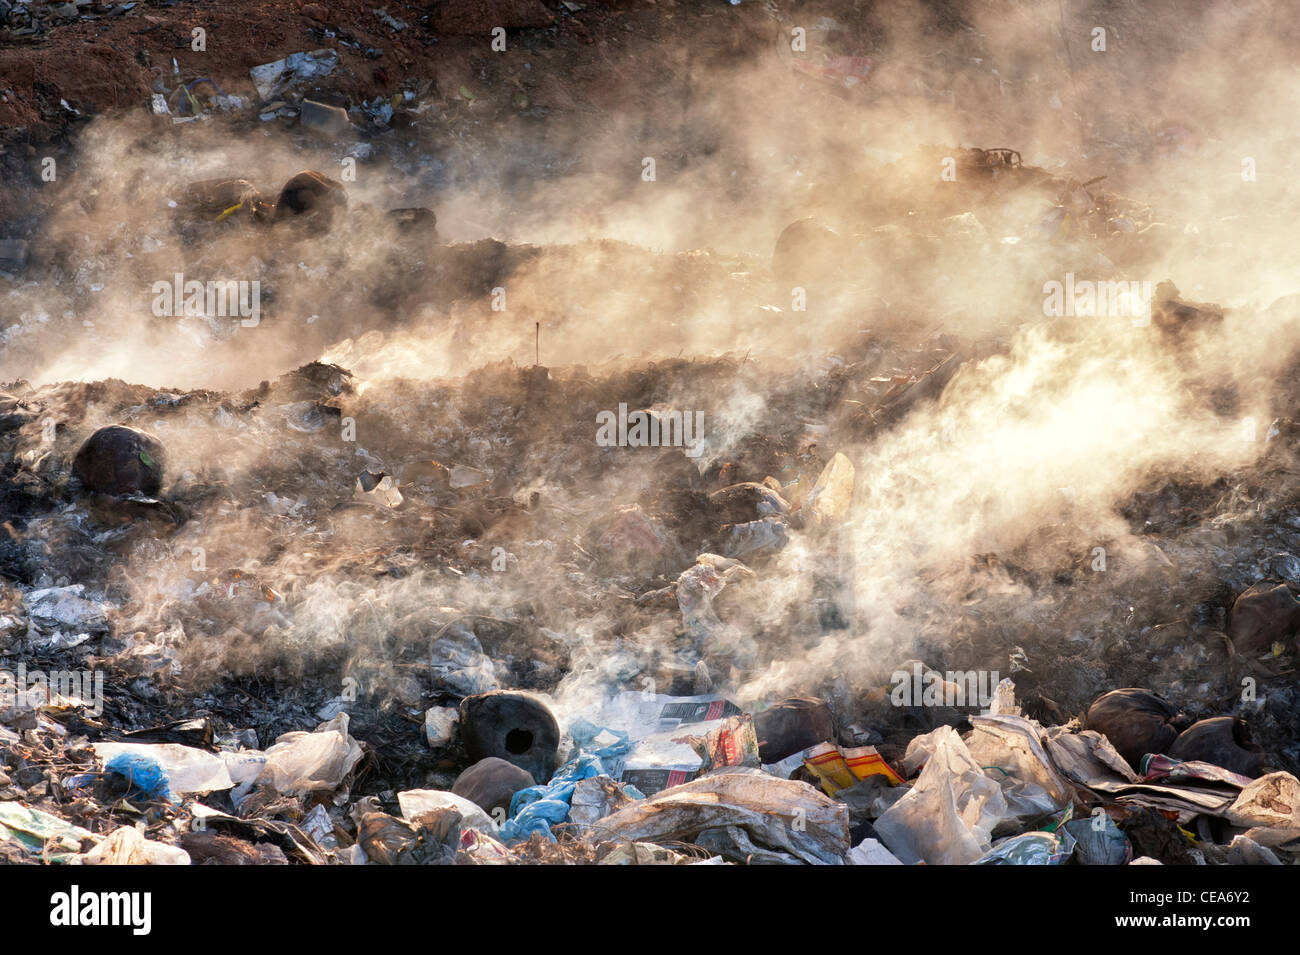 Household waste being burnt on the roadside in India - Stock Image